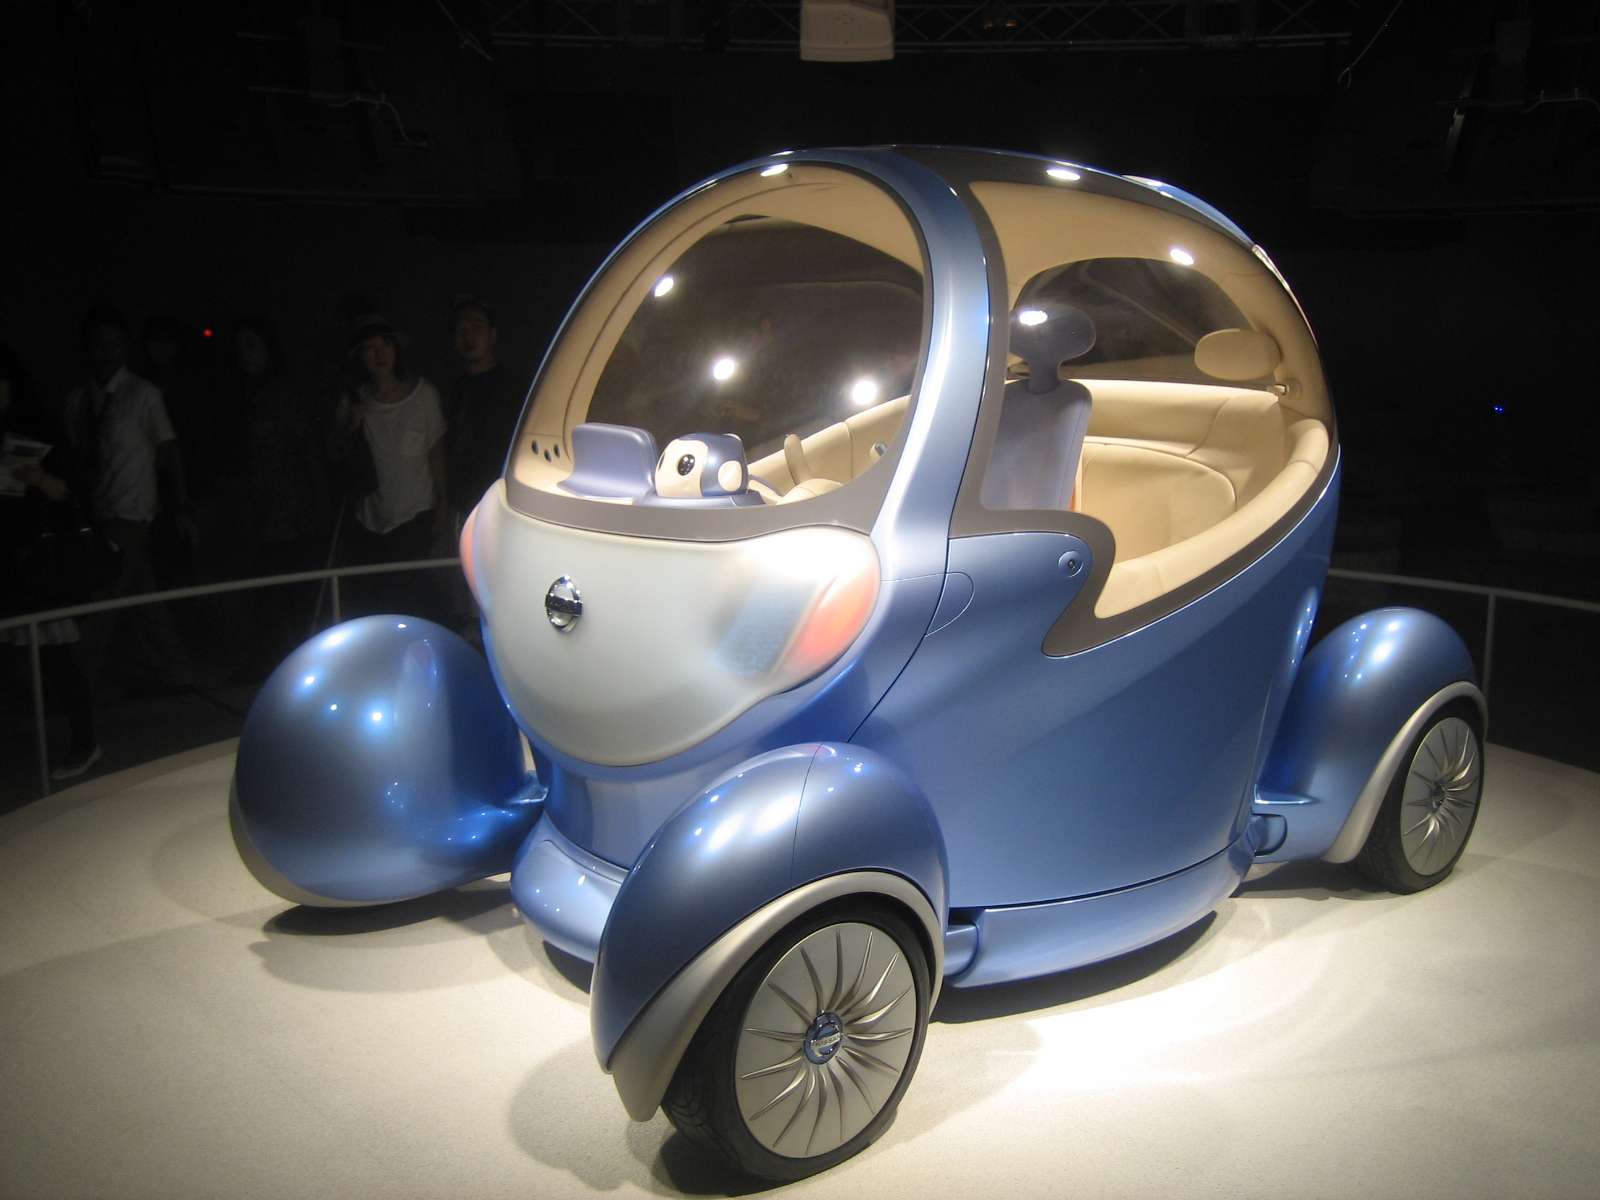 the all new Nissan Pivo2, whose passenger area can pivot 180 degrees, but not while driving